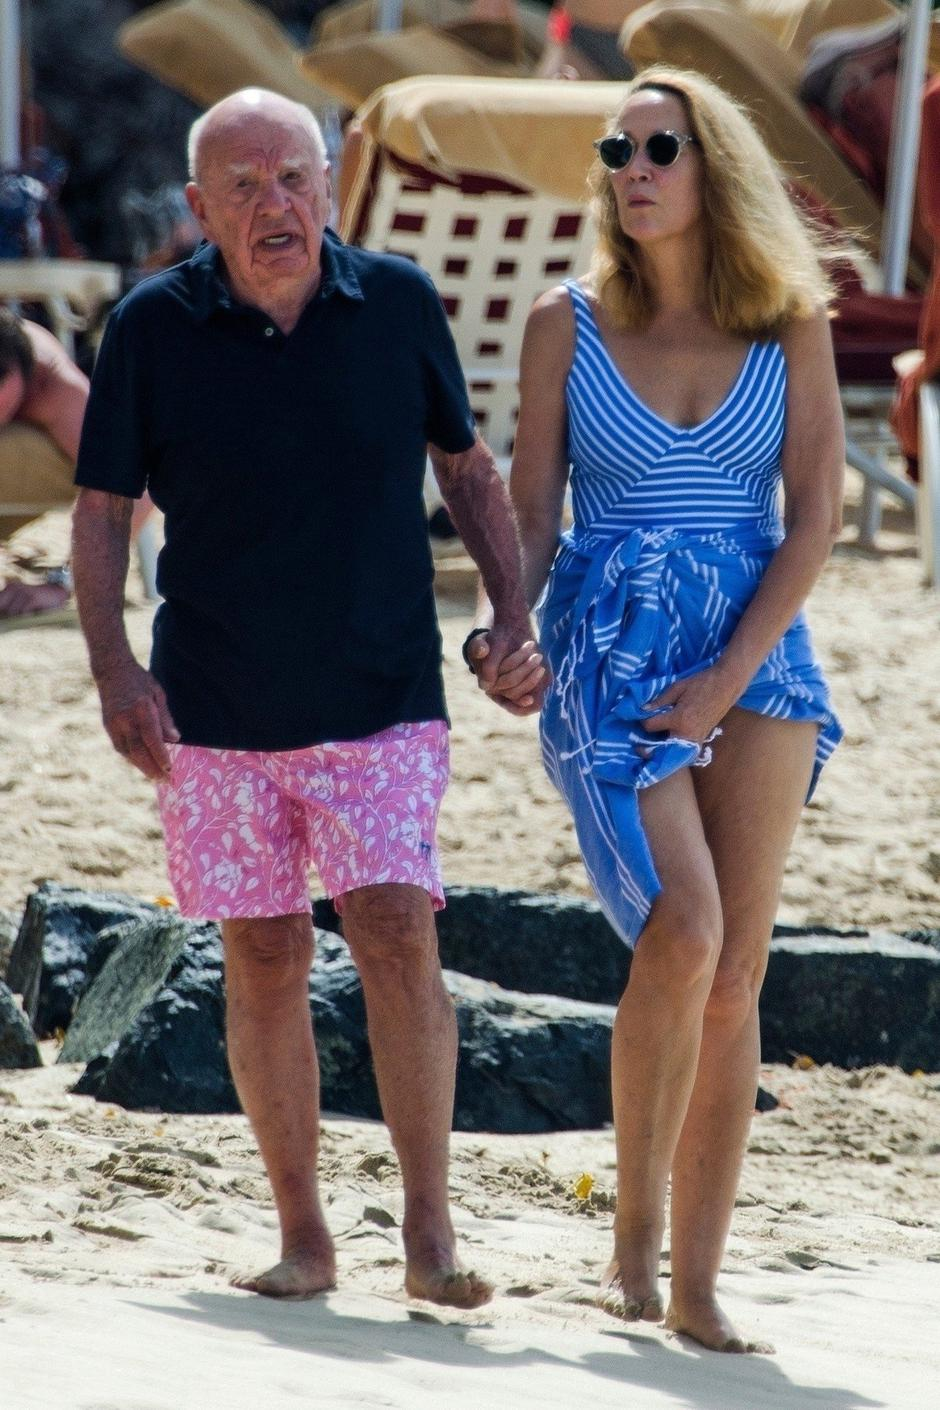 *EXCLUSIVE* Jerry Hall catches her husband Rupert Murdoch as he stumbles on the beach | Autor: SMUN, ISLA20